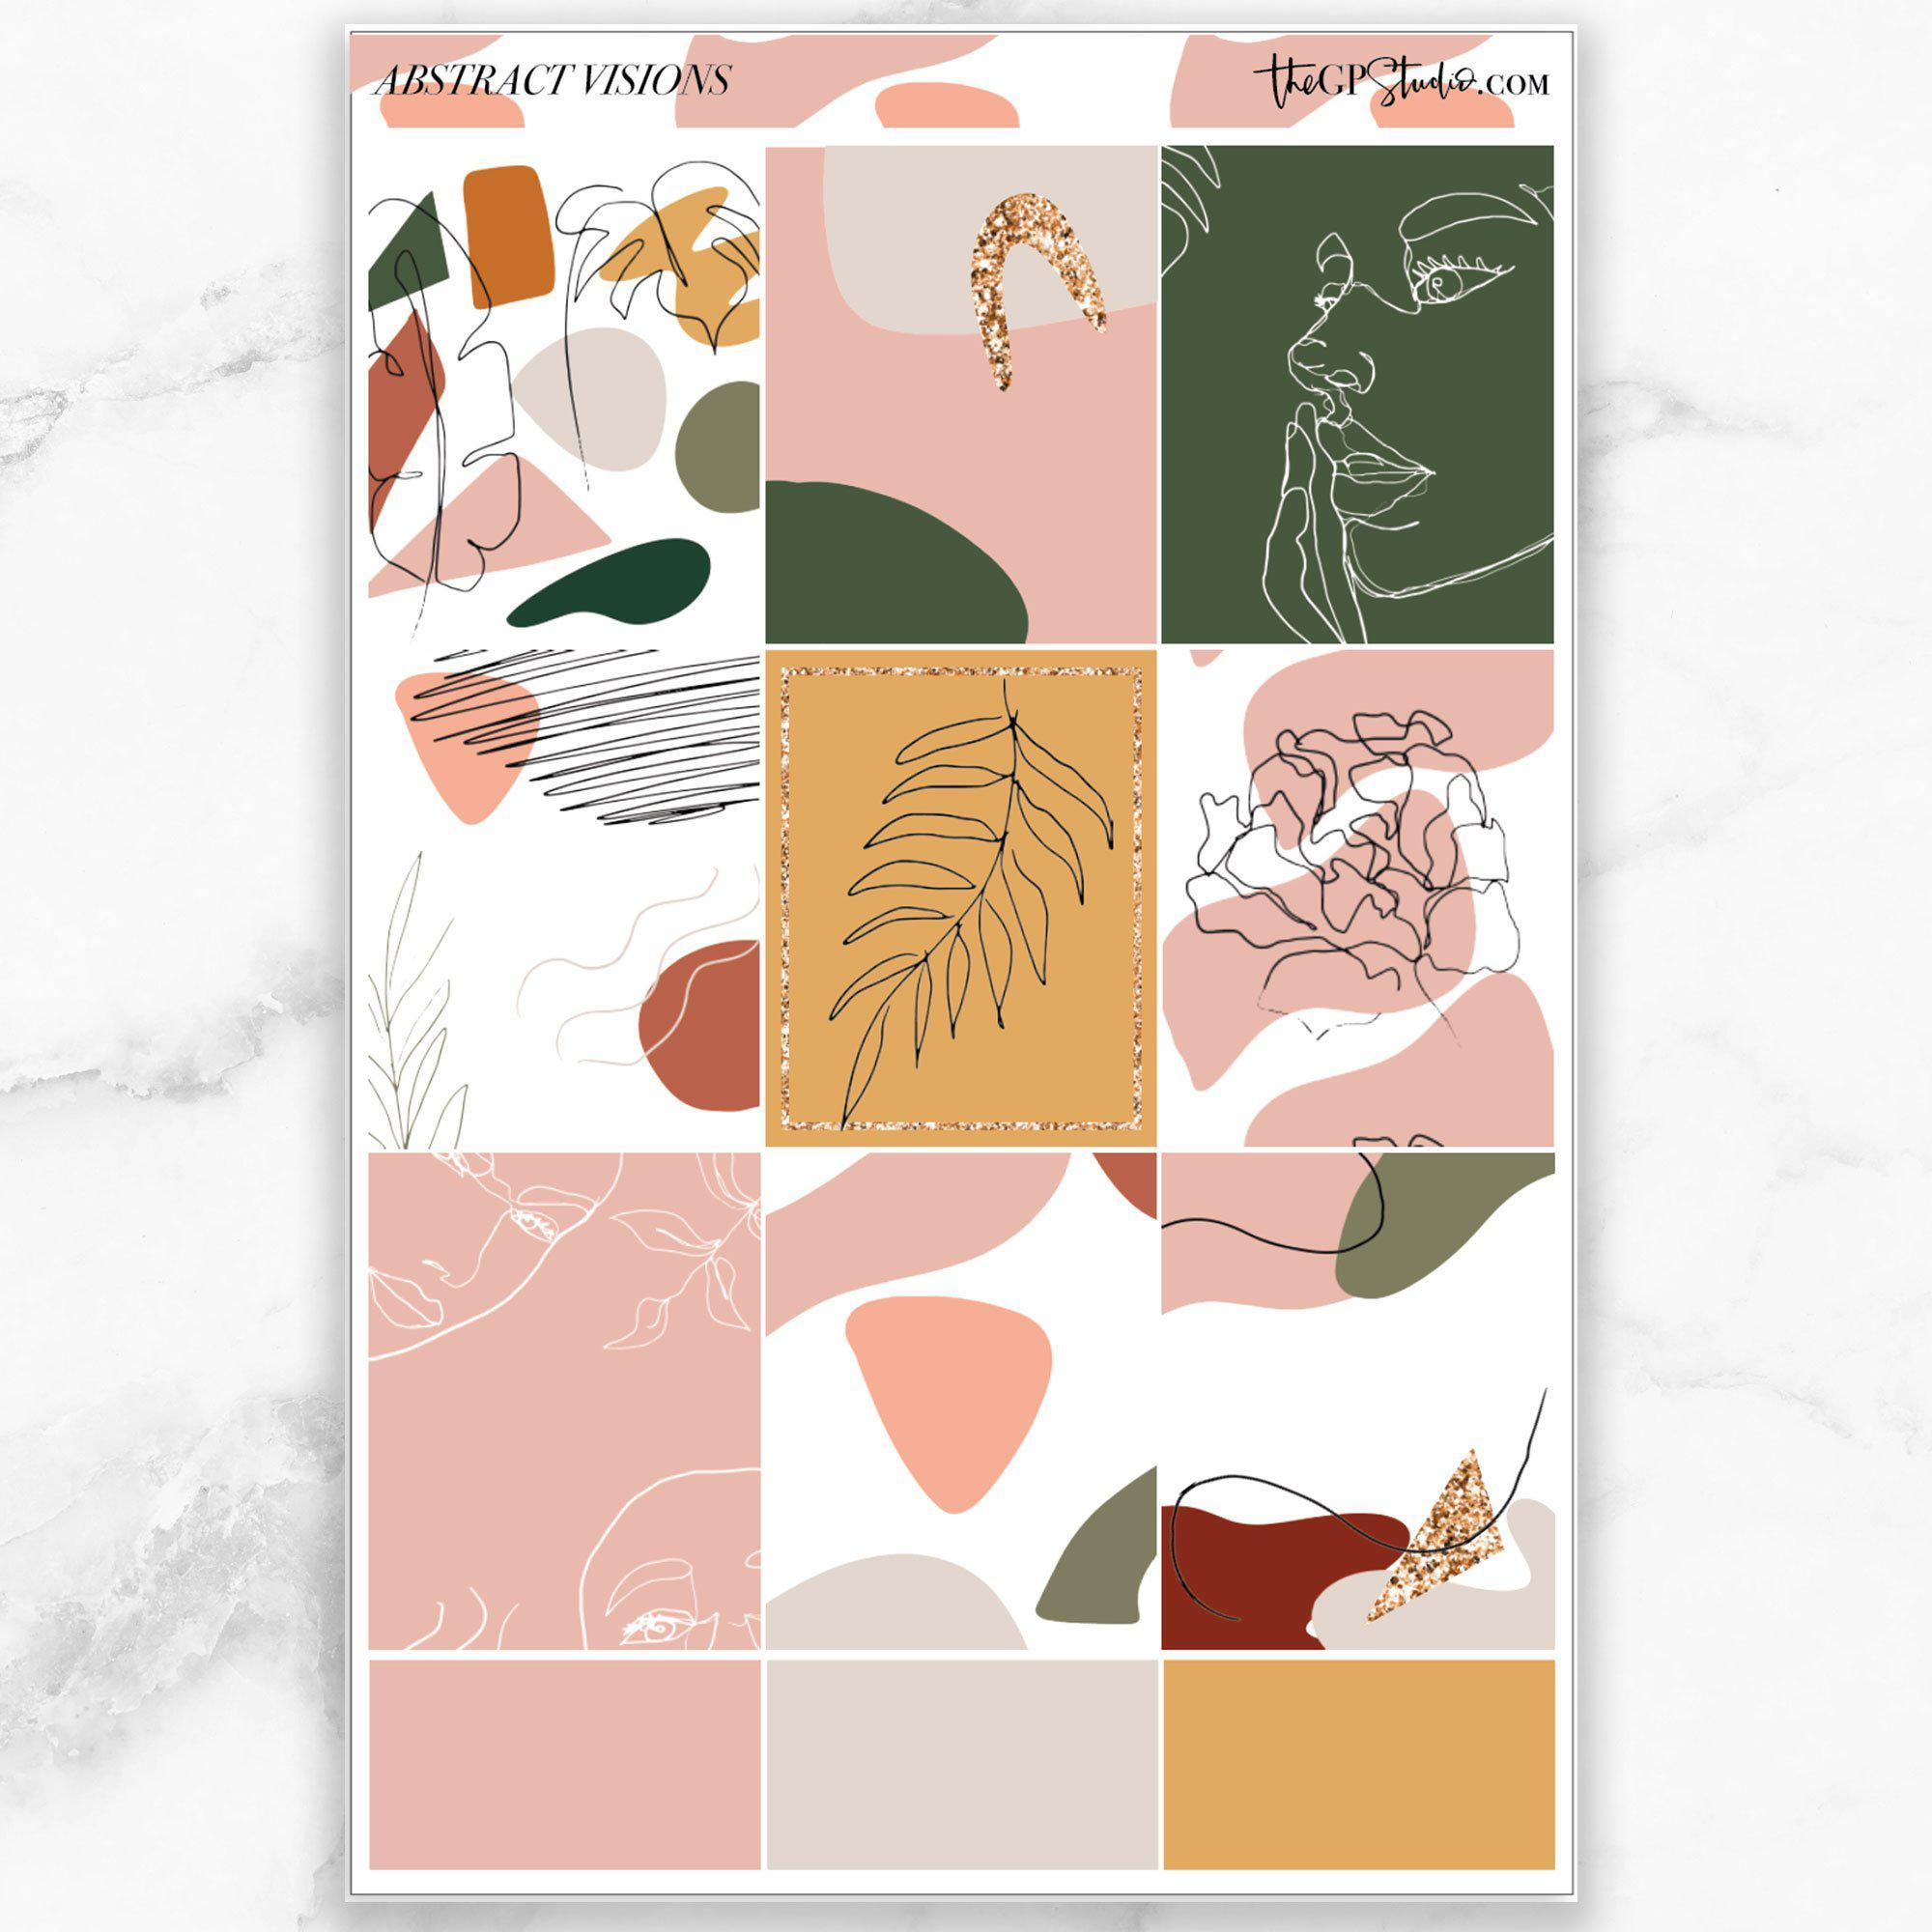 ABSTRACT VISIONS Full Boxes Planner Stickers-The GP Studio